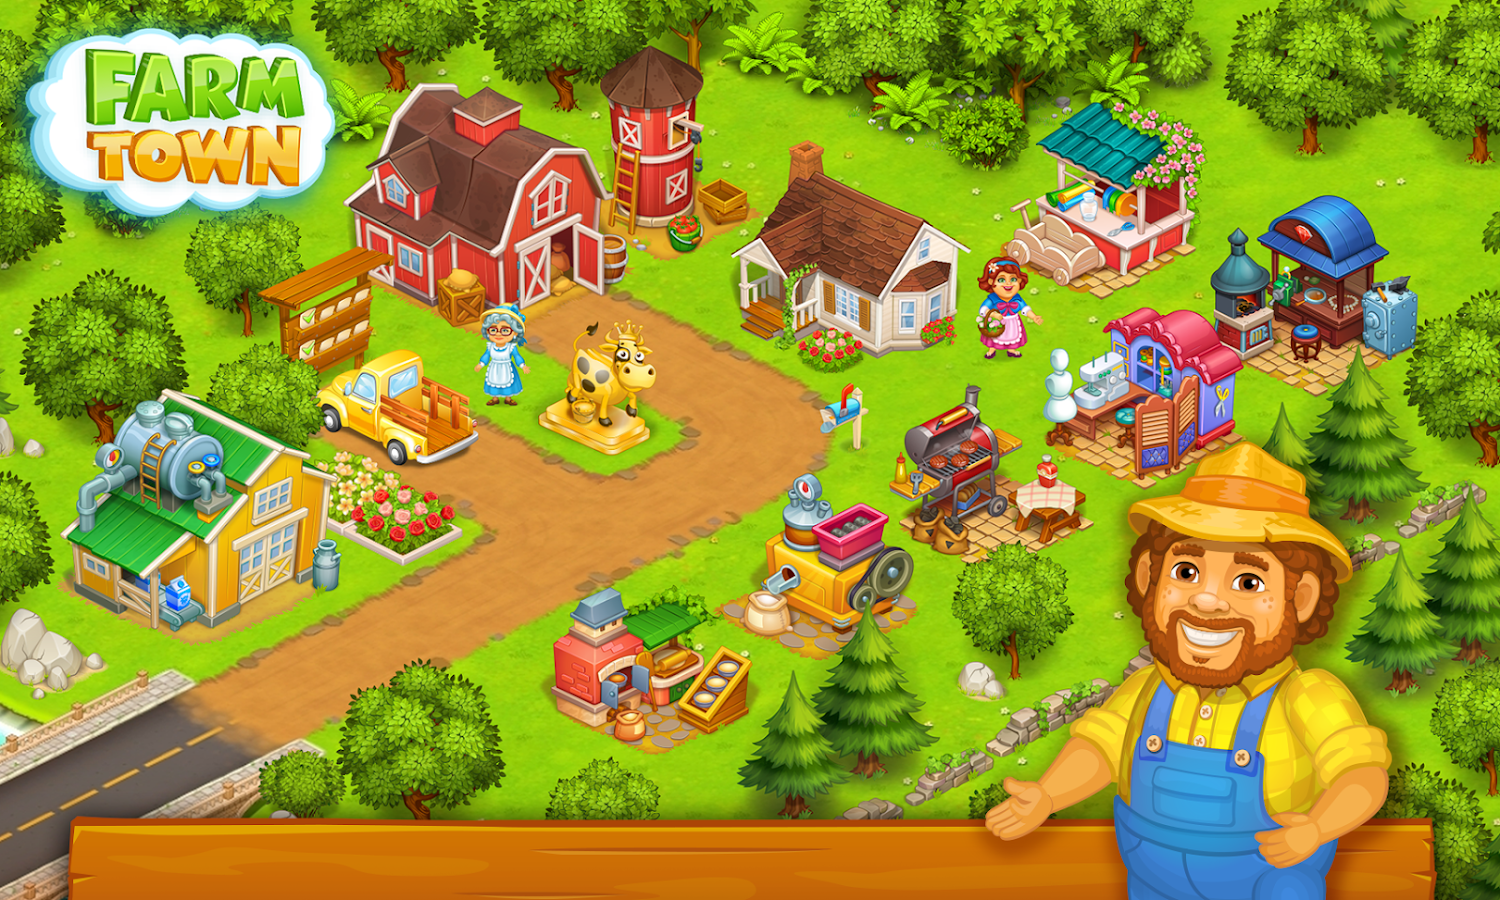 Farmtown Play